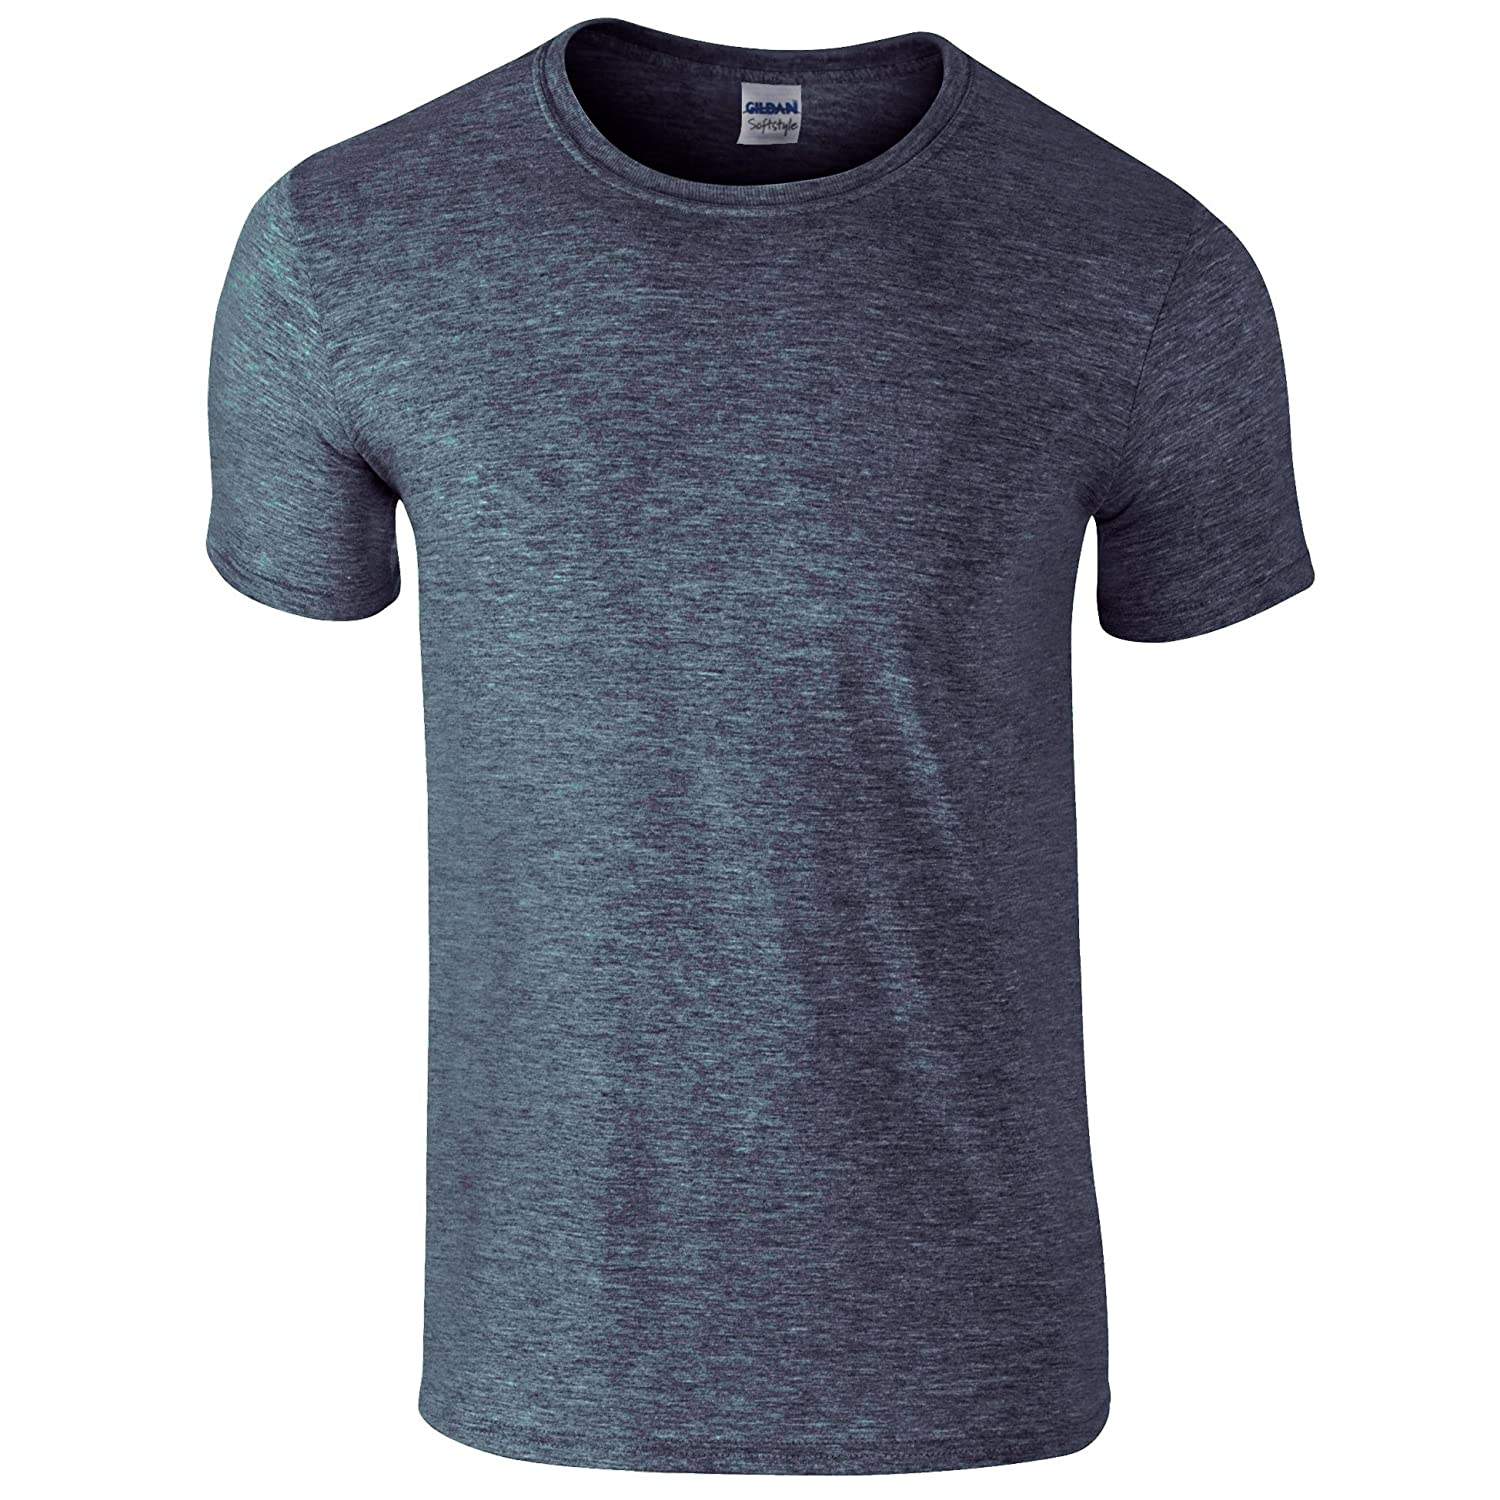 Gildan Men's Softstyle 4.5 oz. T-Shirt